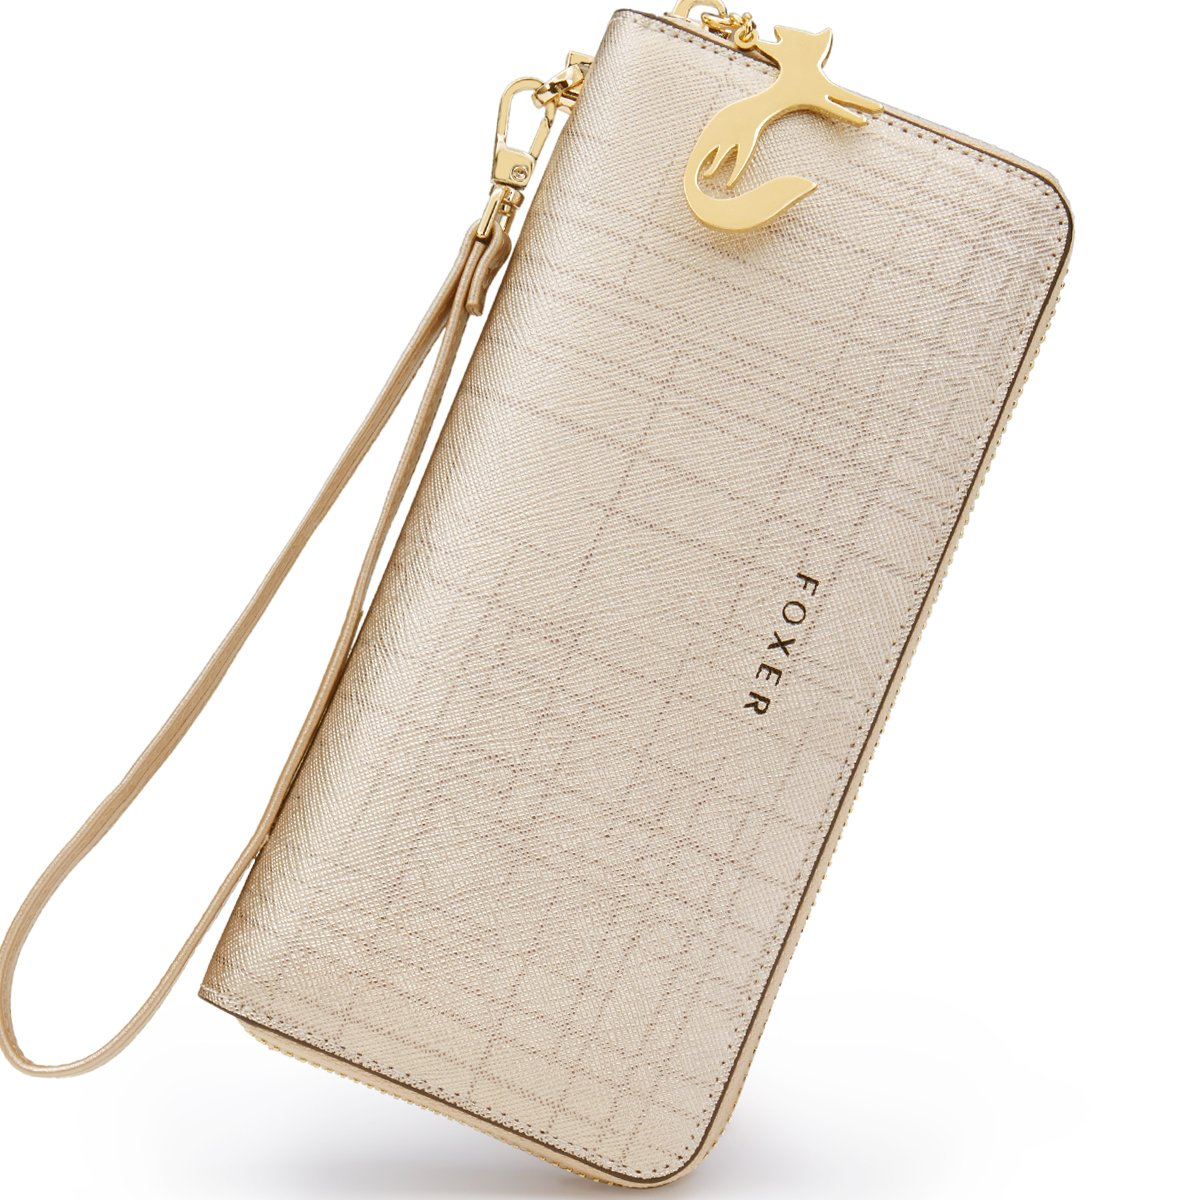 FOXER Women Leather Wallet Bifold Wallet Clutch Wallet with Wristlet (Gold)